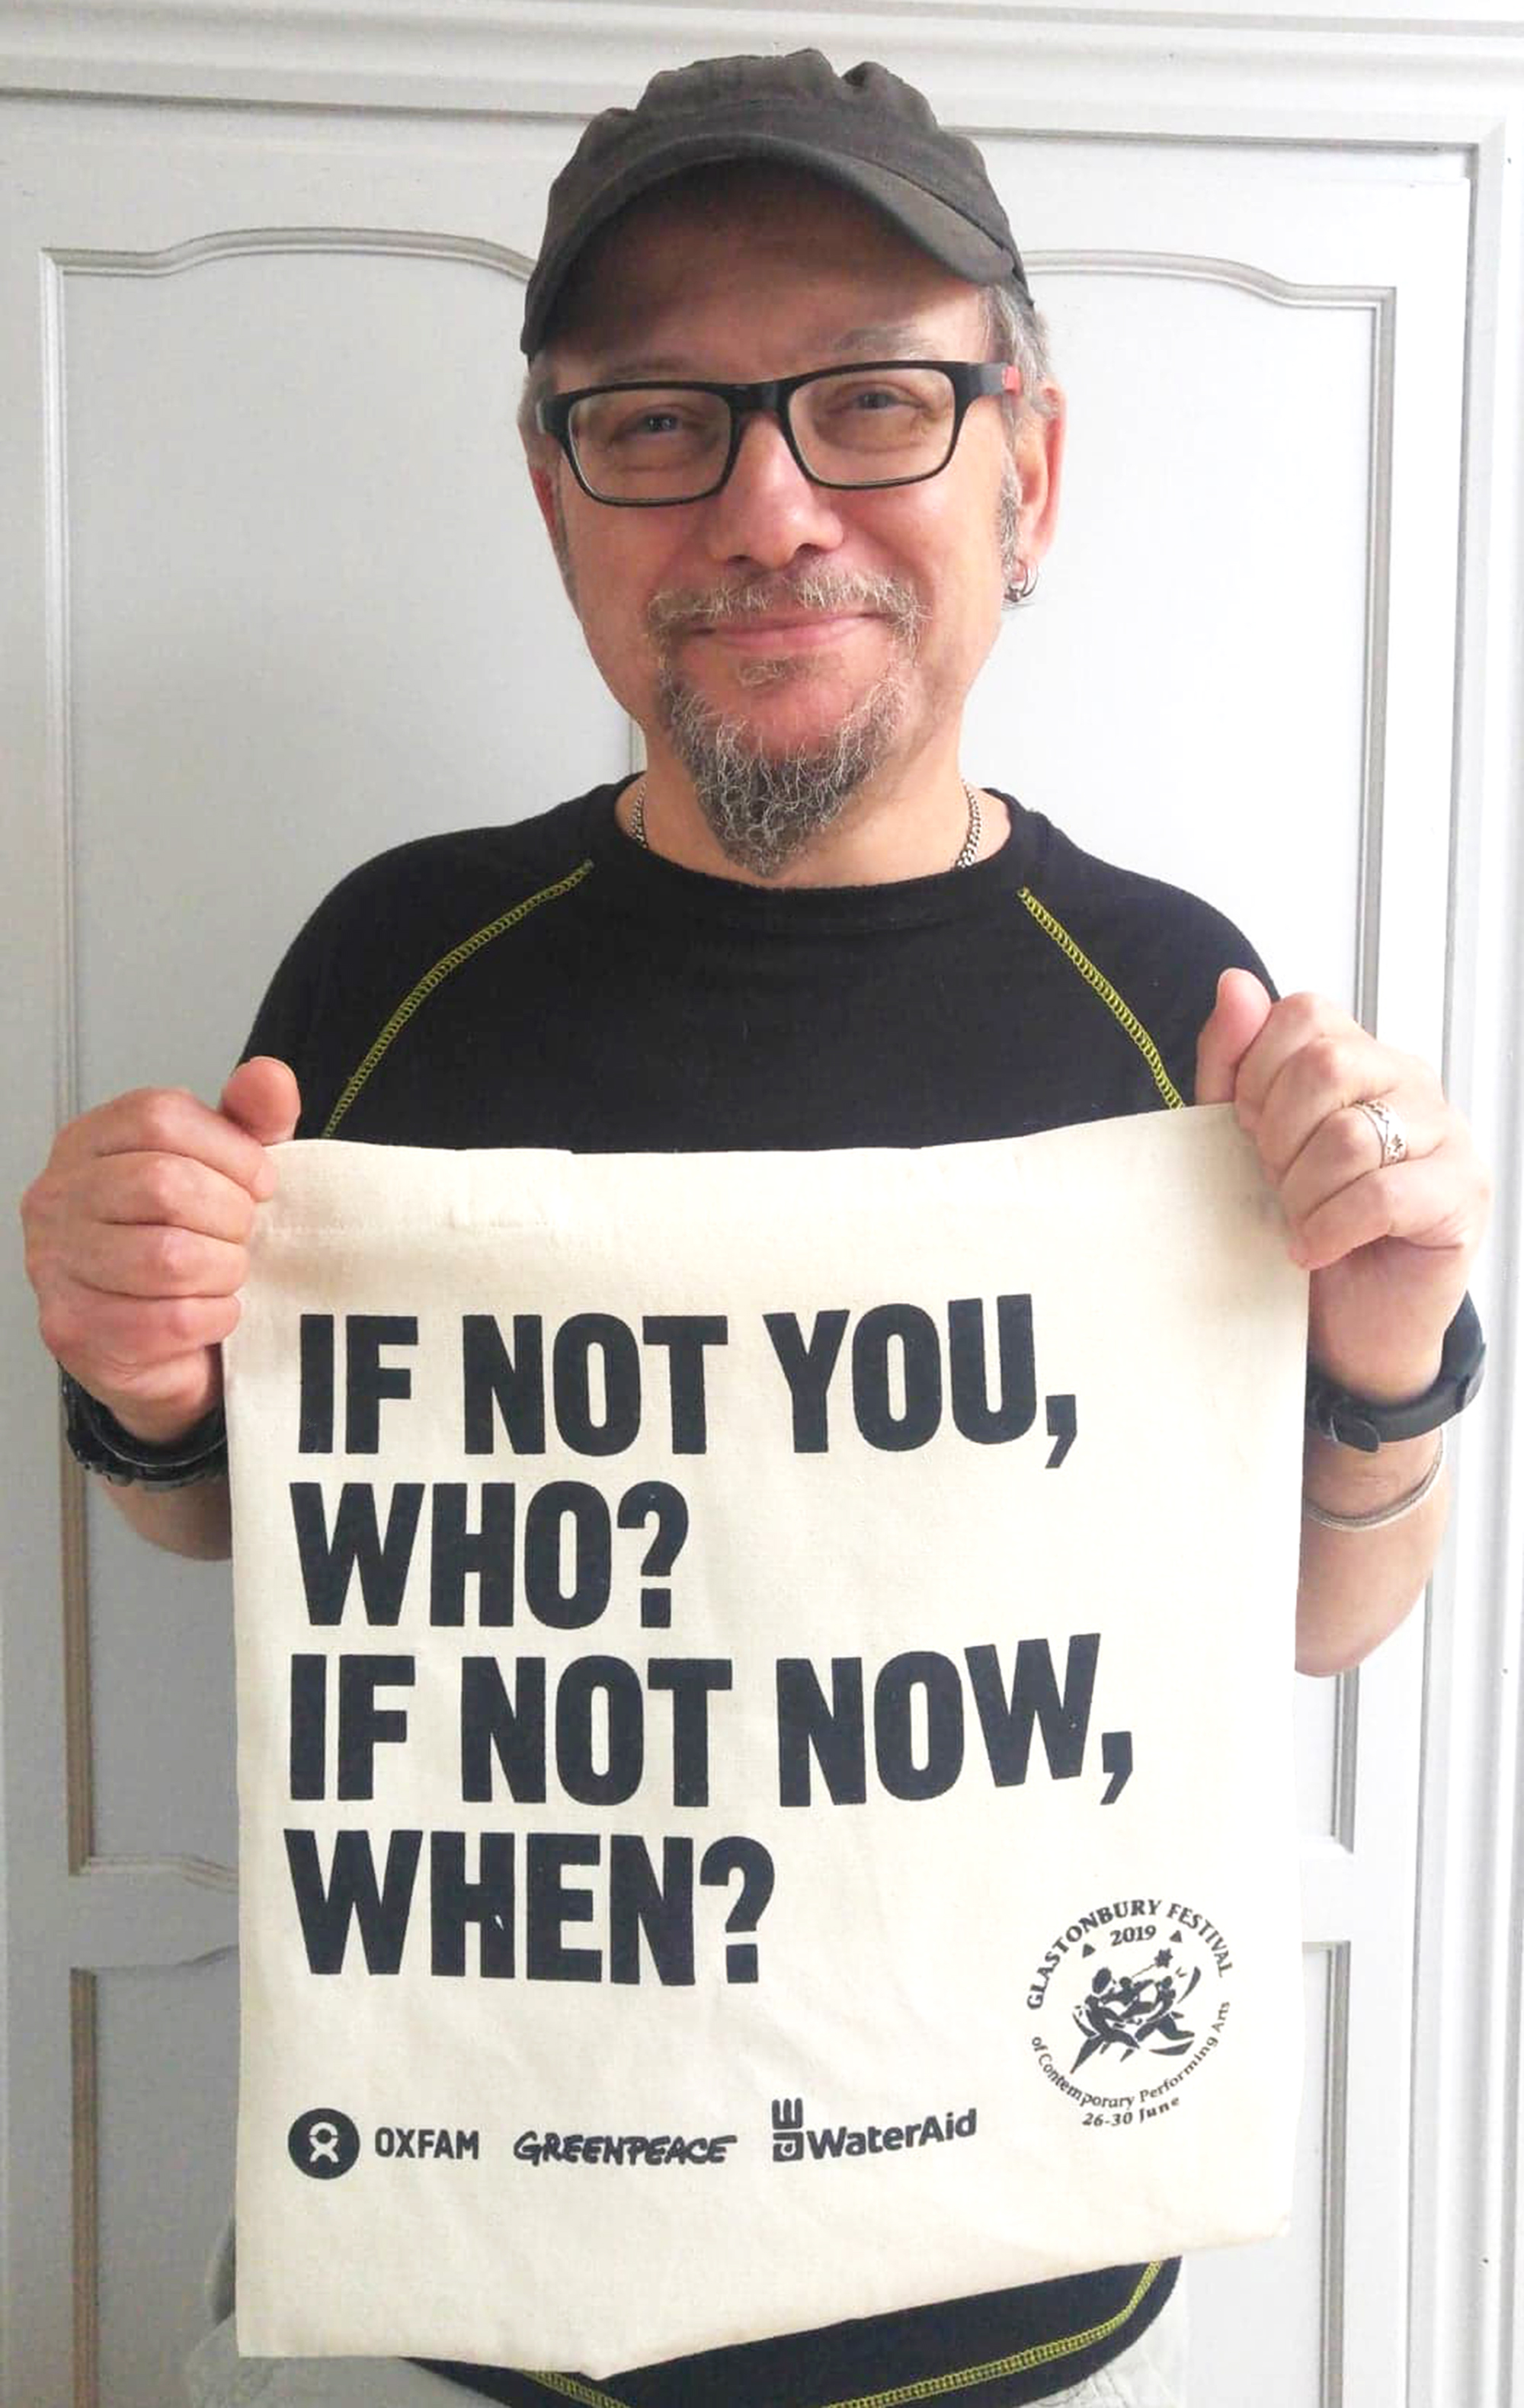 Above: John Higgins, co-founder of Go La La holding a tote bag from this year's Glastonbury Festival (which banned the sale of single use plastics). The statement 'what are we all waiting for?!!' resonated with John and Laura.